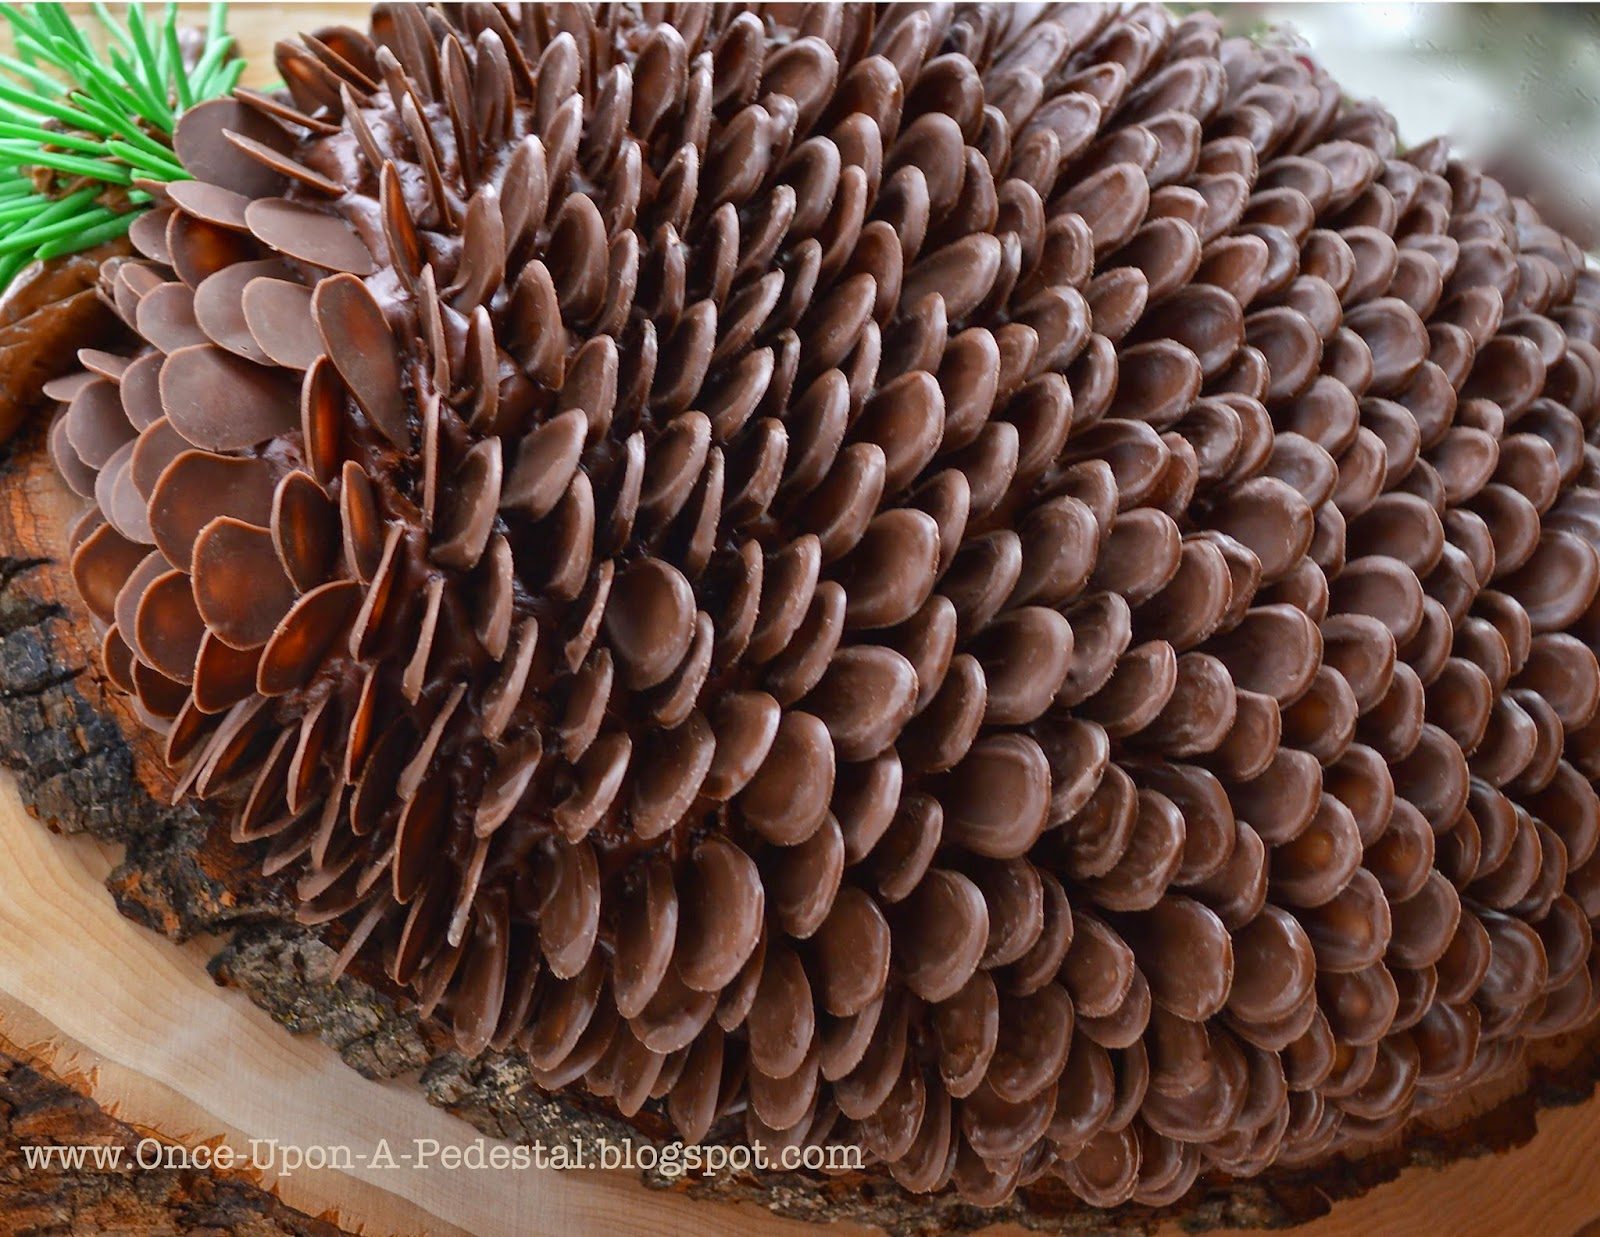 pine-cone-cake-rose-levy-beranbaum-the-cake-bible-christmas-tutorial-deborah-stauch